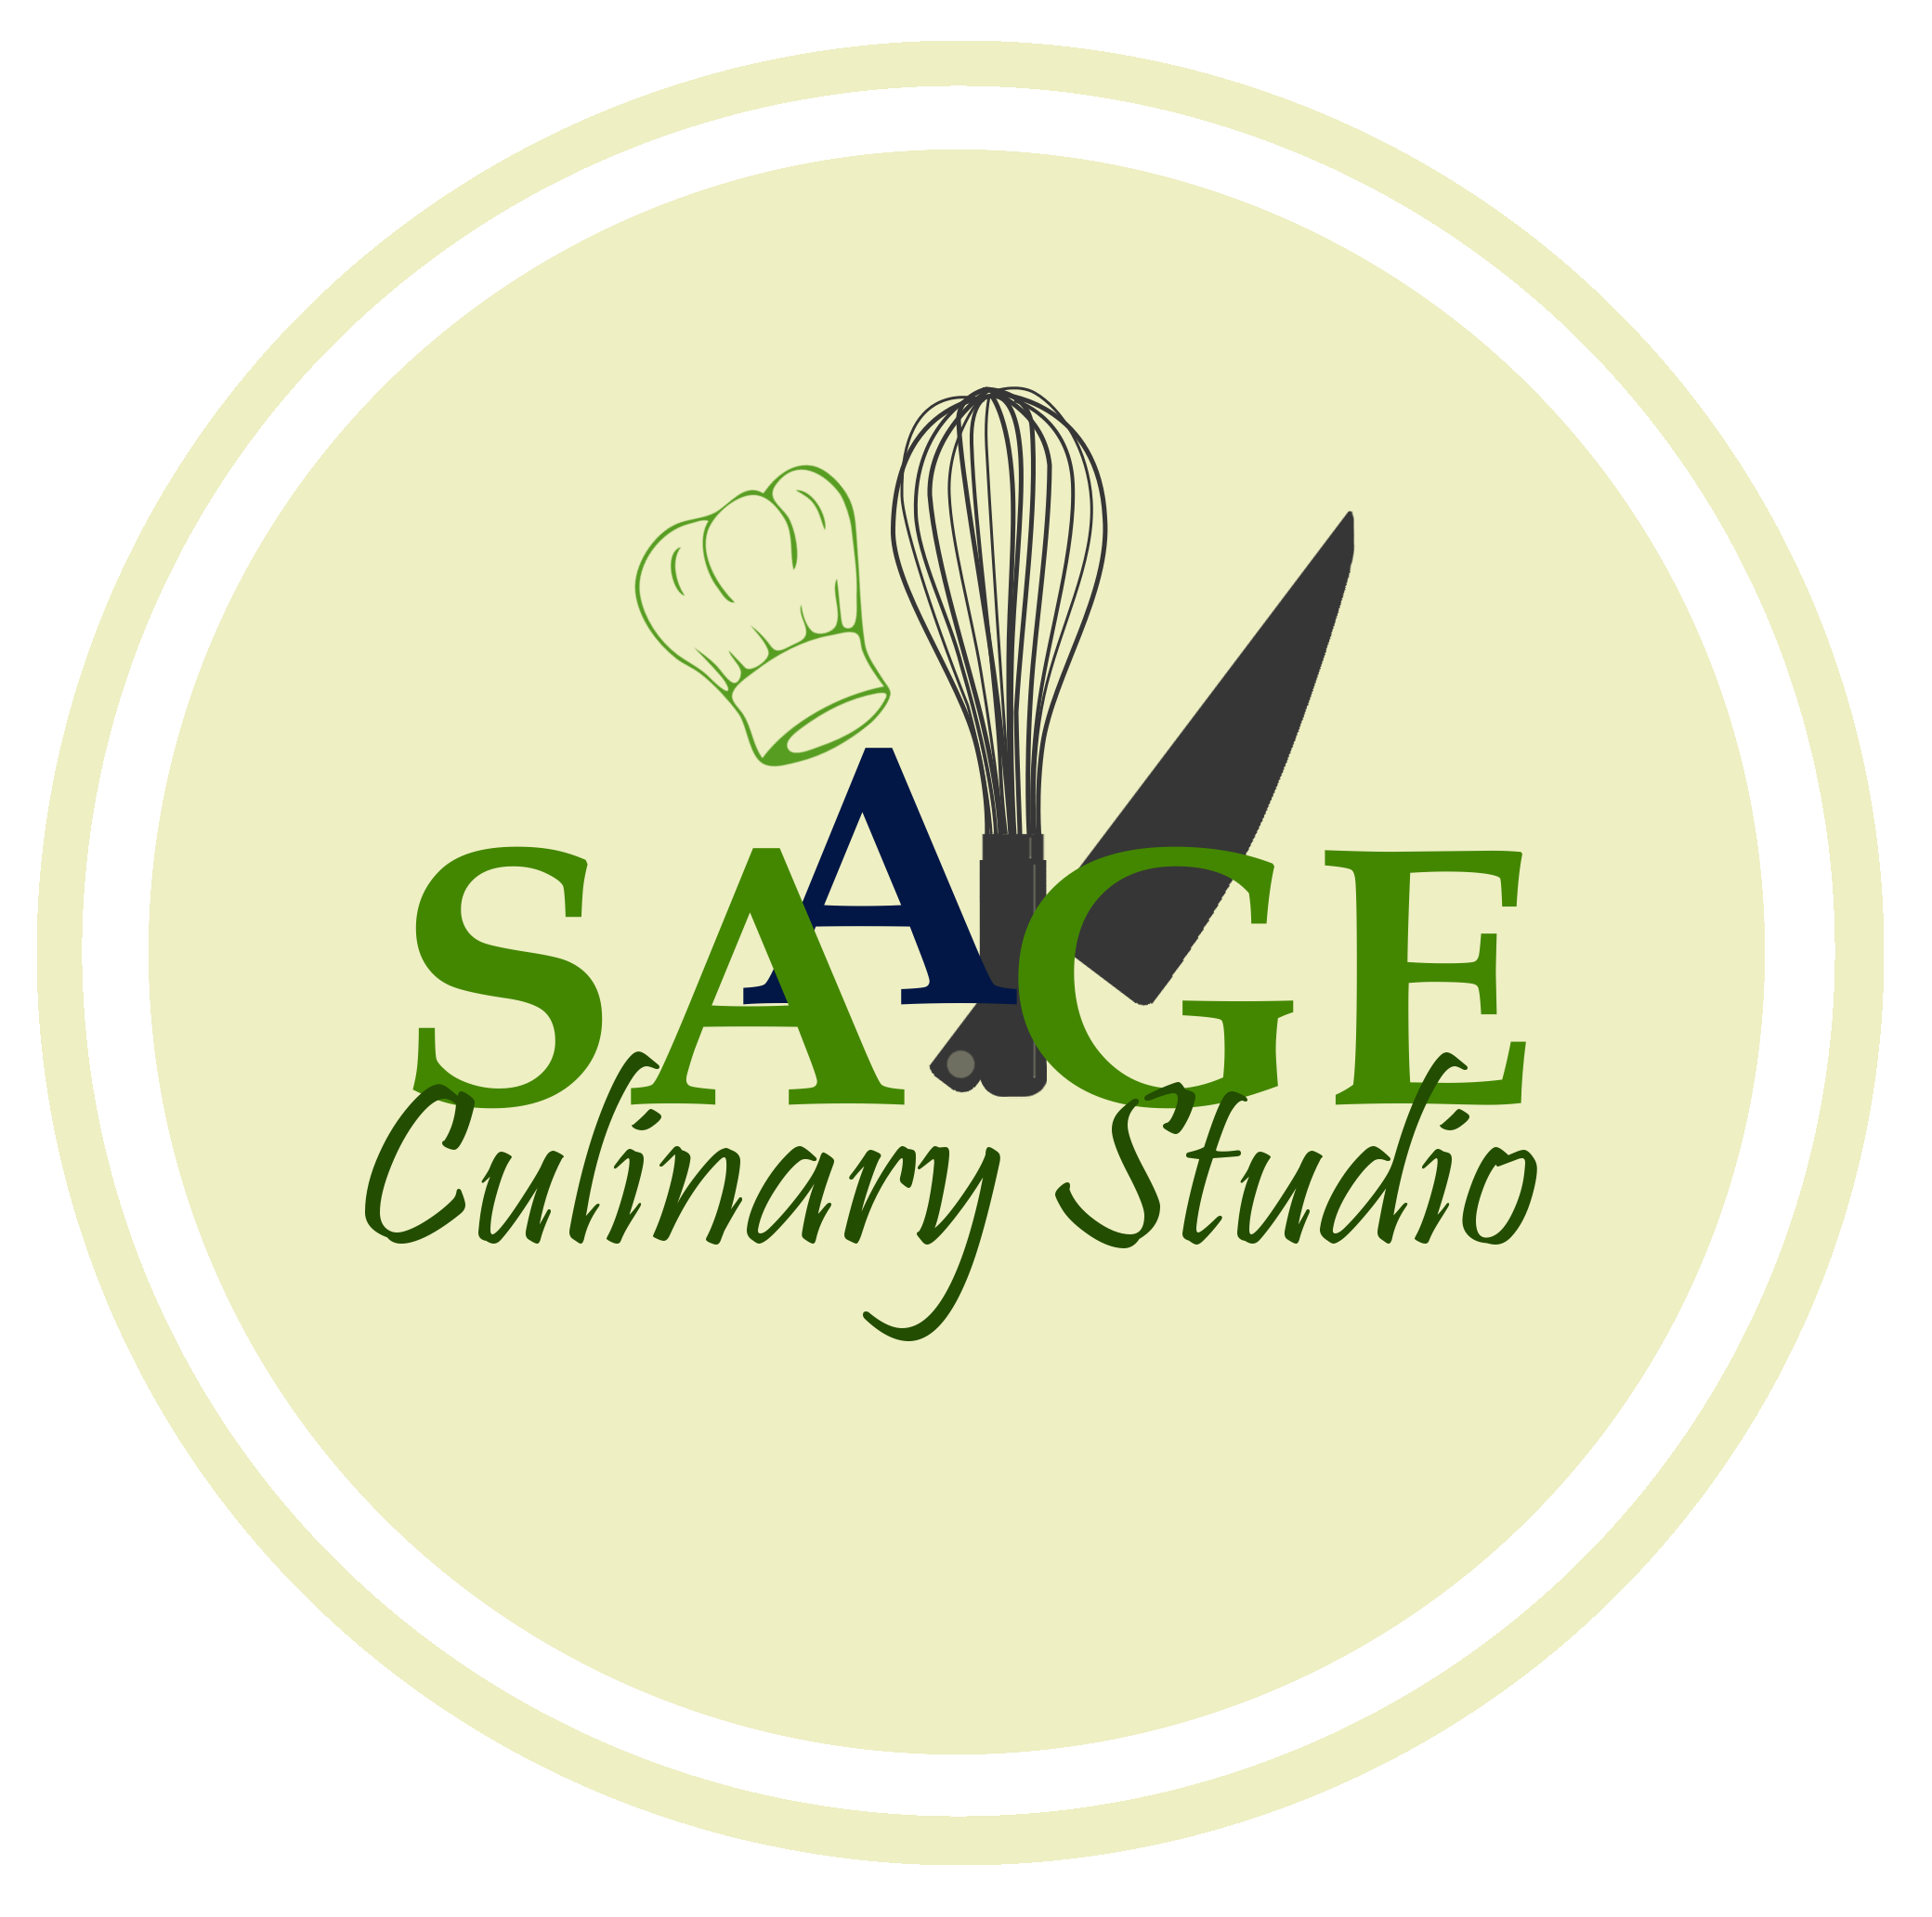 SAAGE Culinary Studio Circle Logo